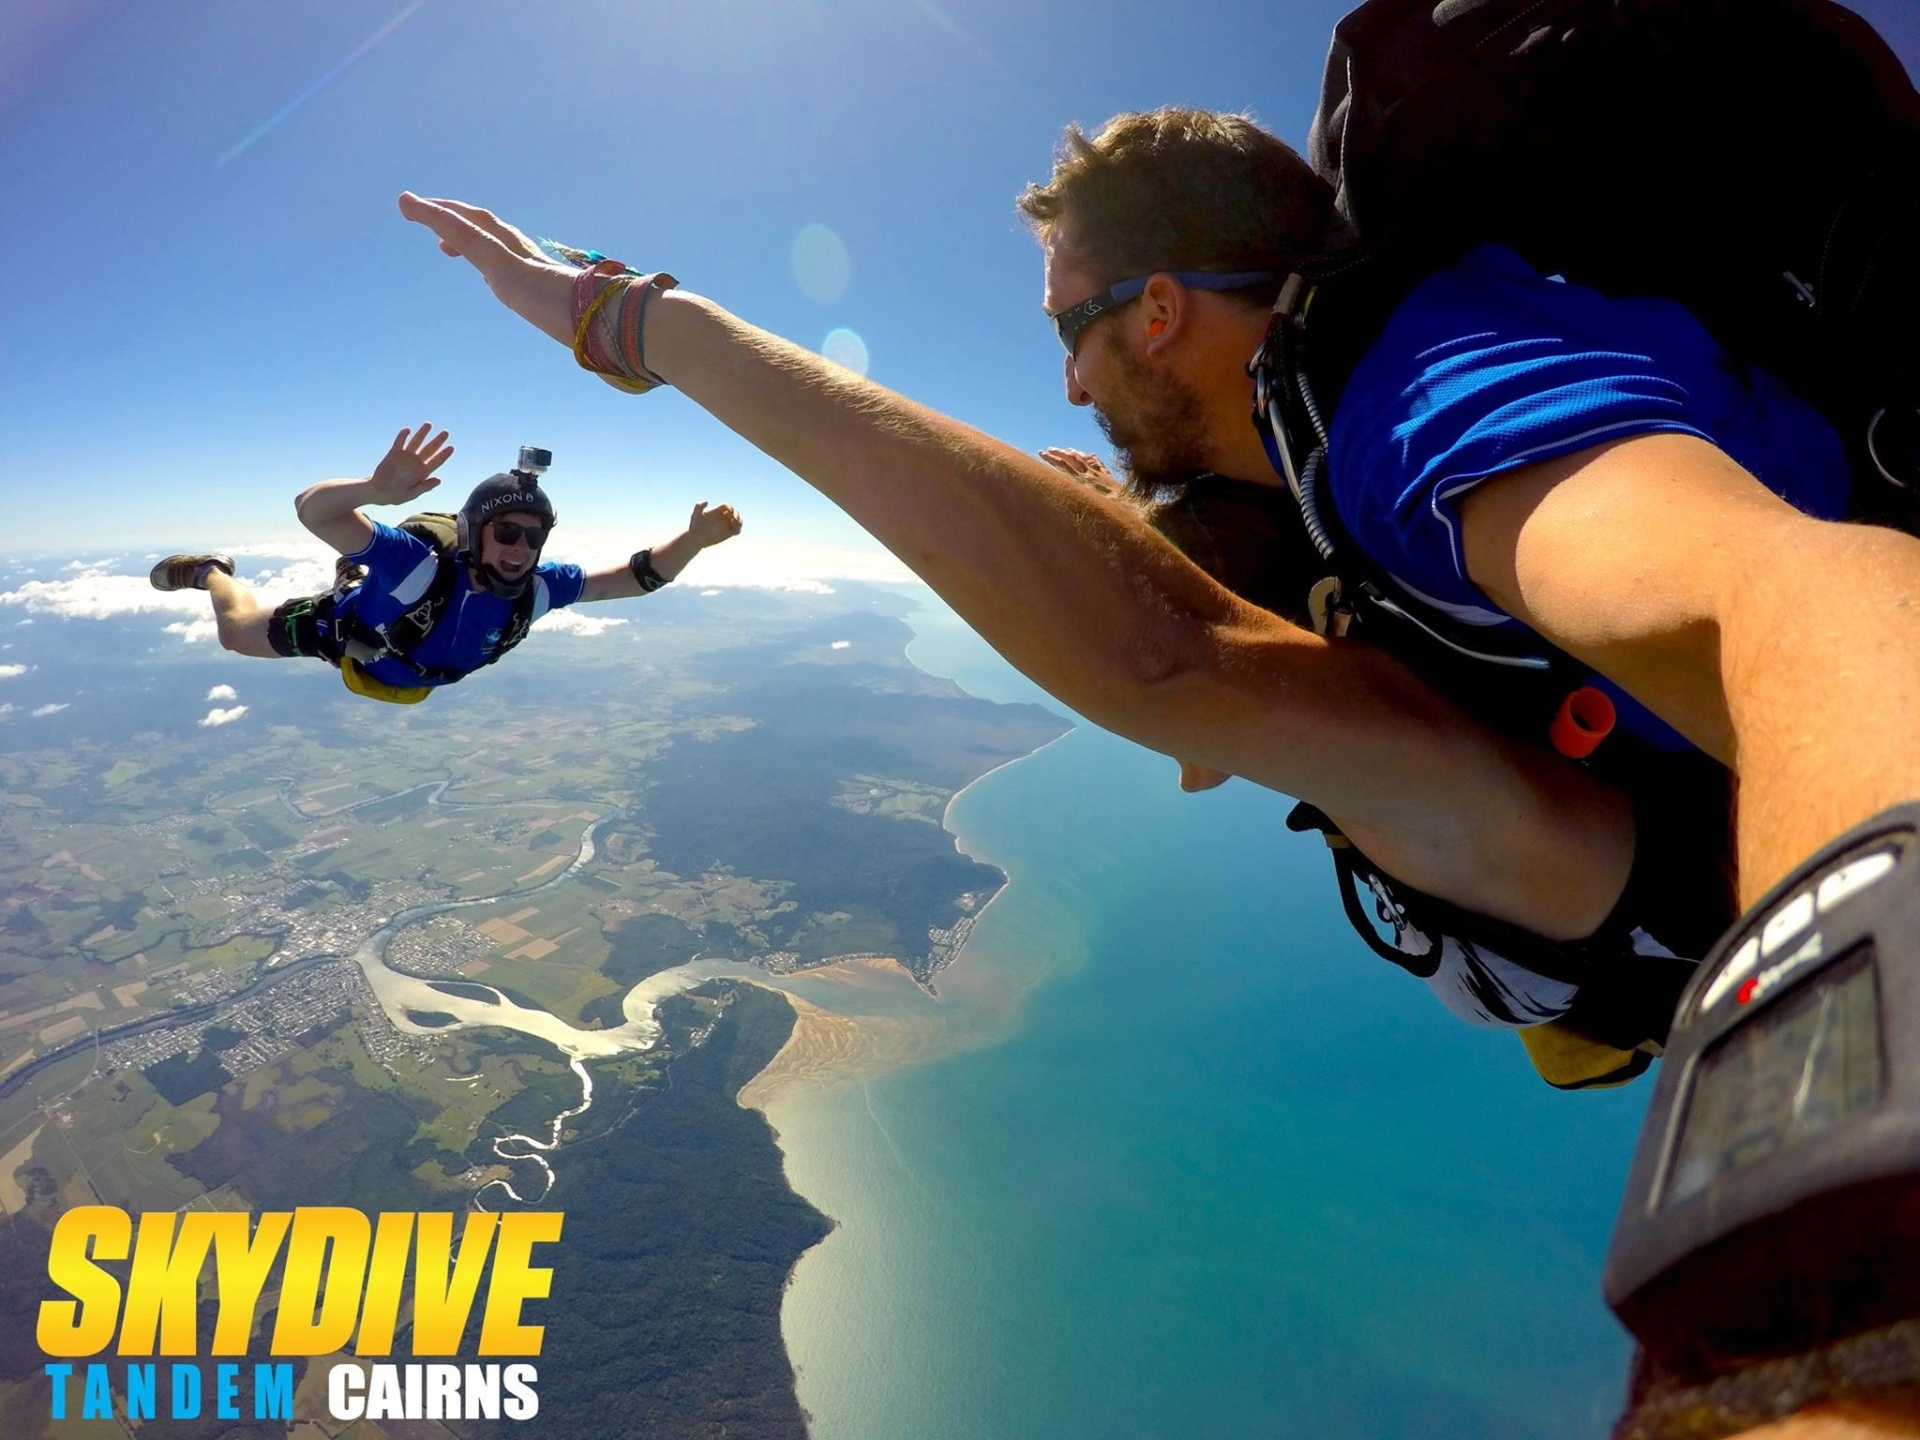 Tandem Cairns Skydiving - Cairns - Tourism Town - Find